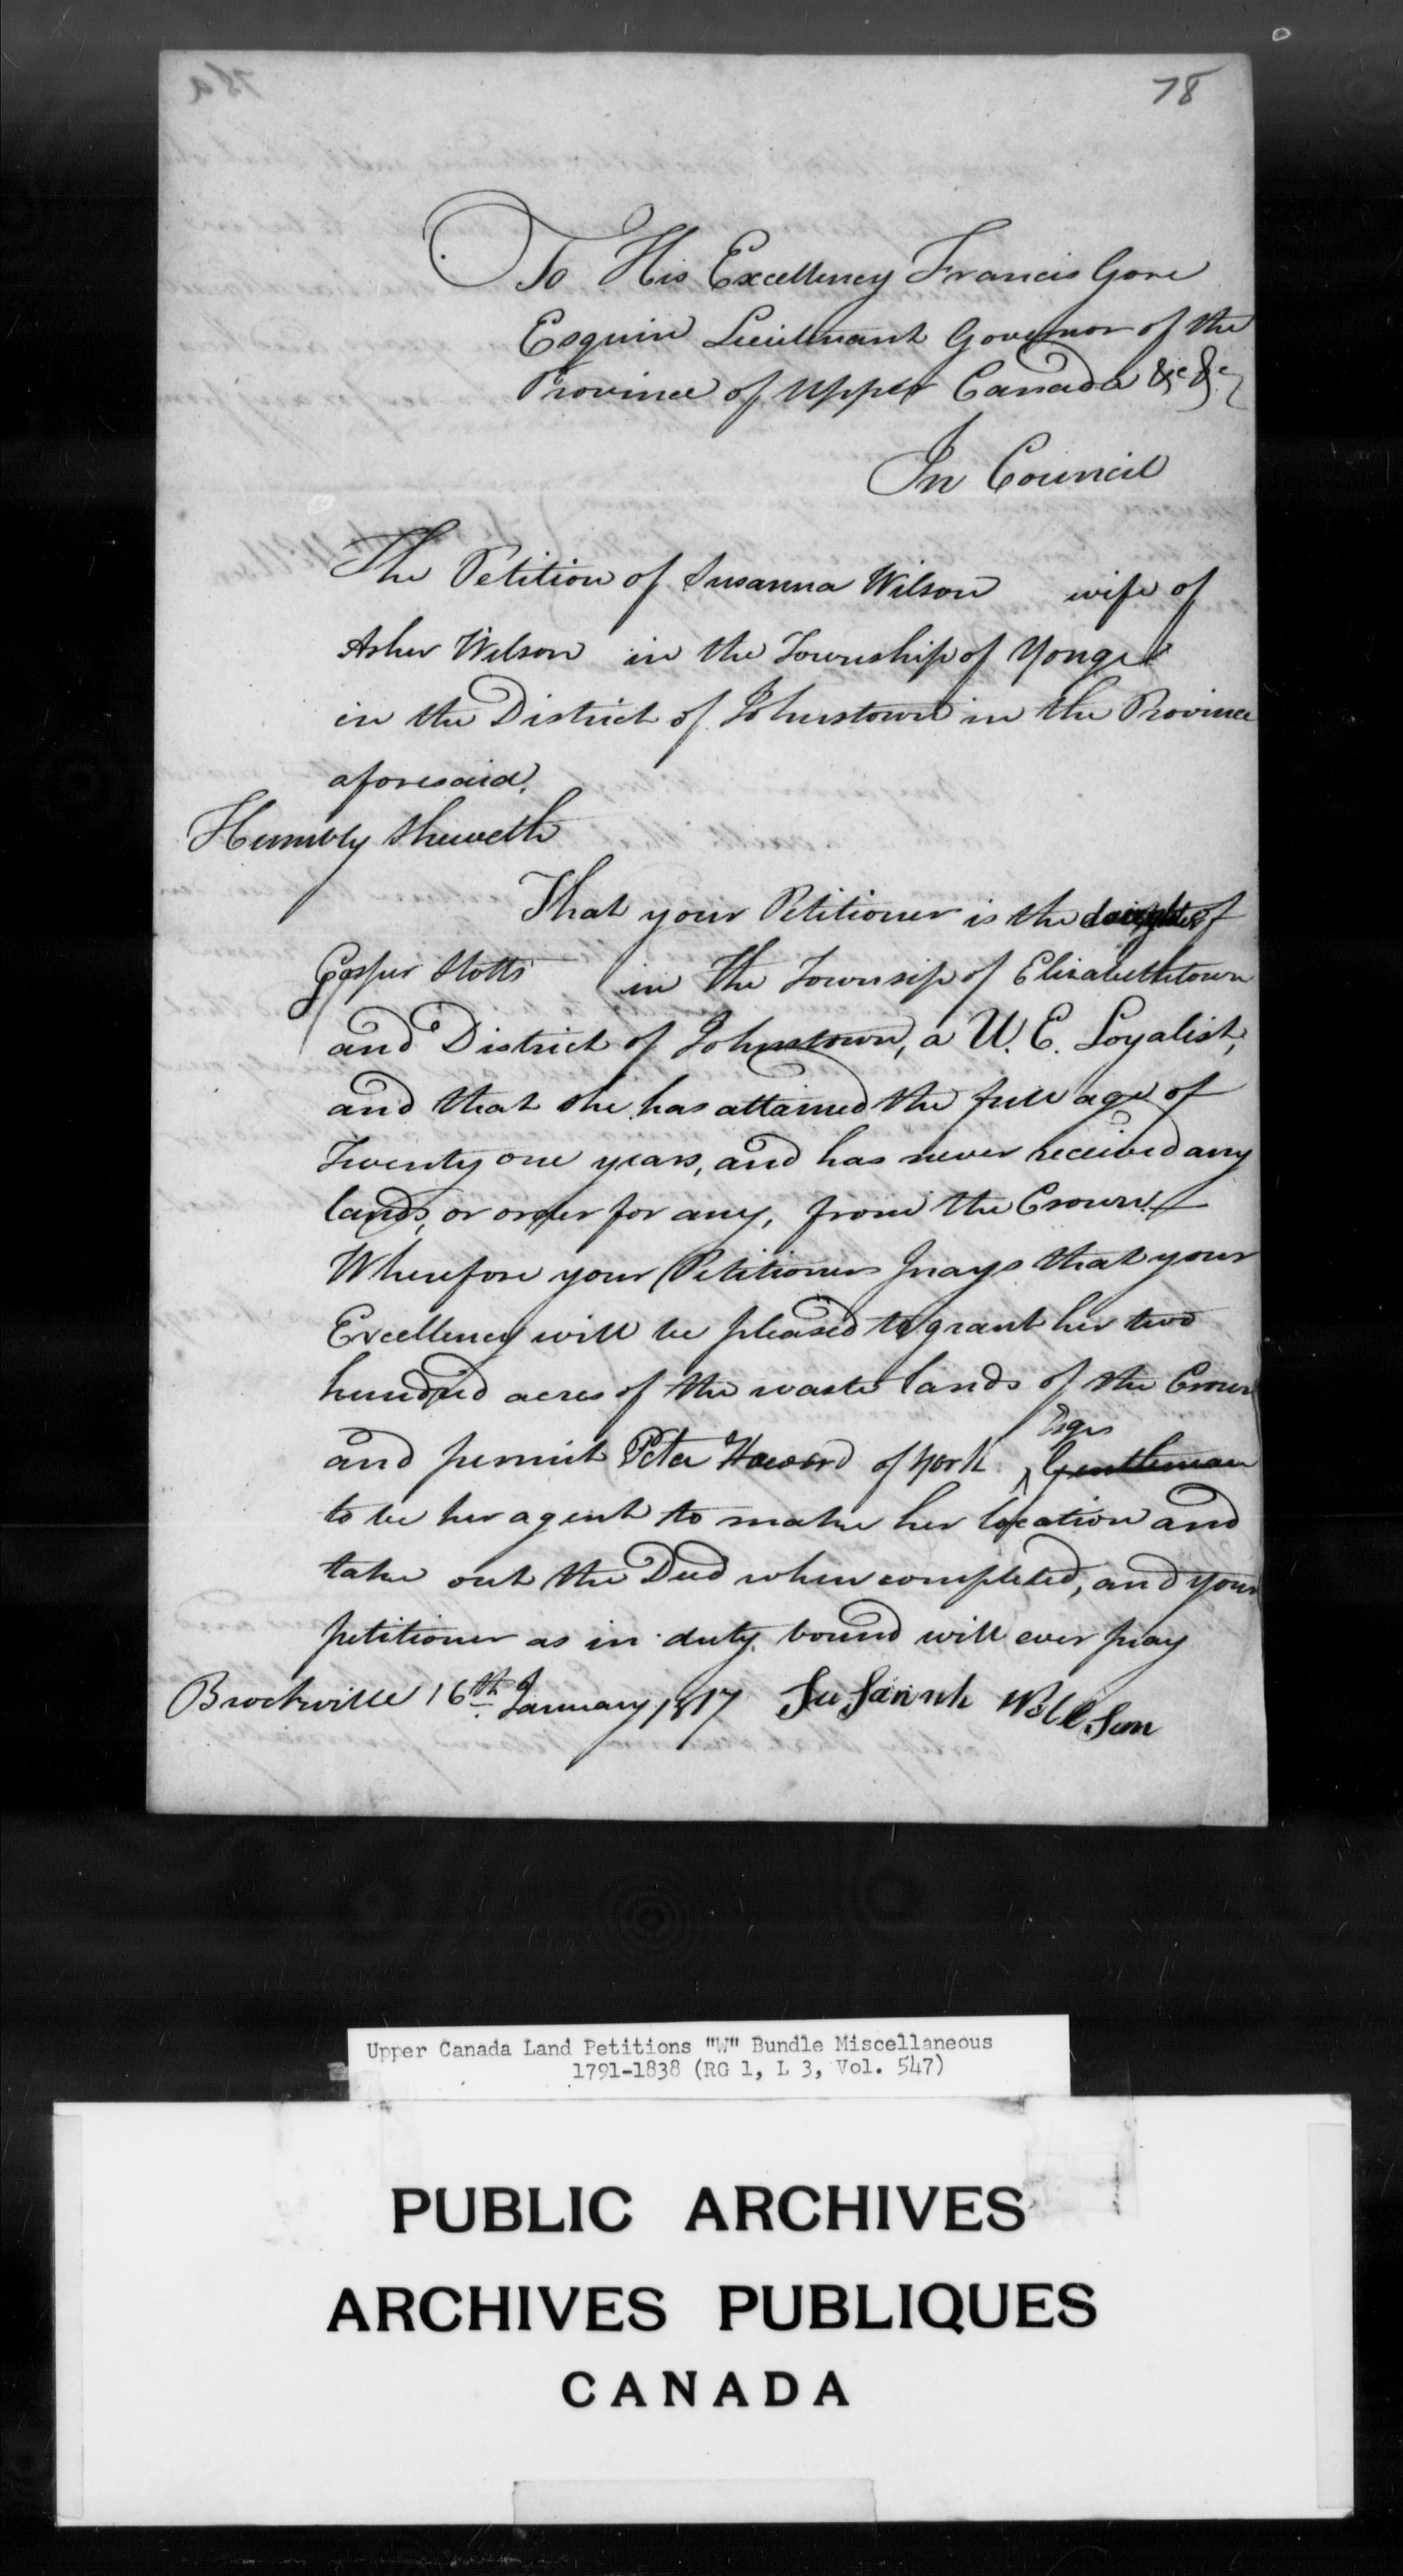 Title: Upper Canada Land Petitions (1763-1865) - Mikan Number: 205131 - Microform: c-2969